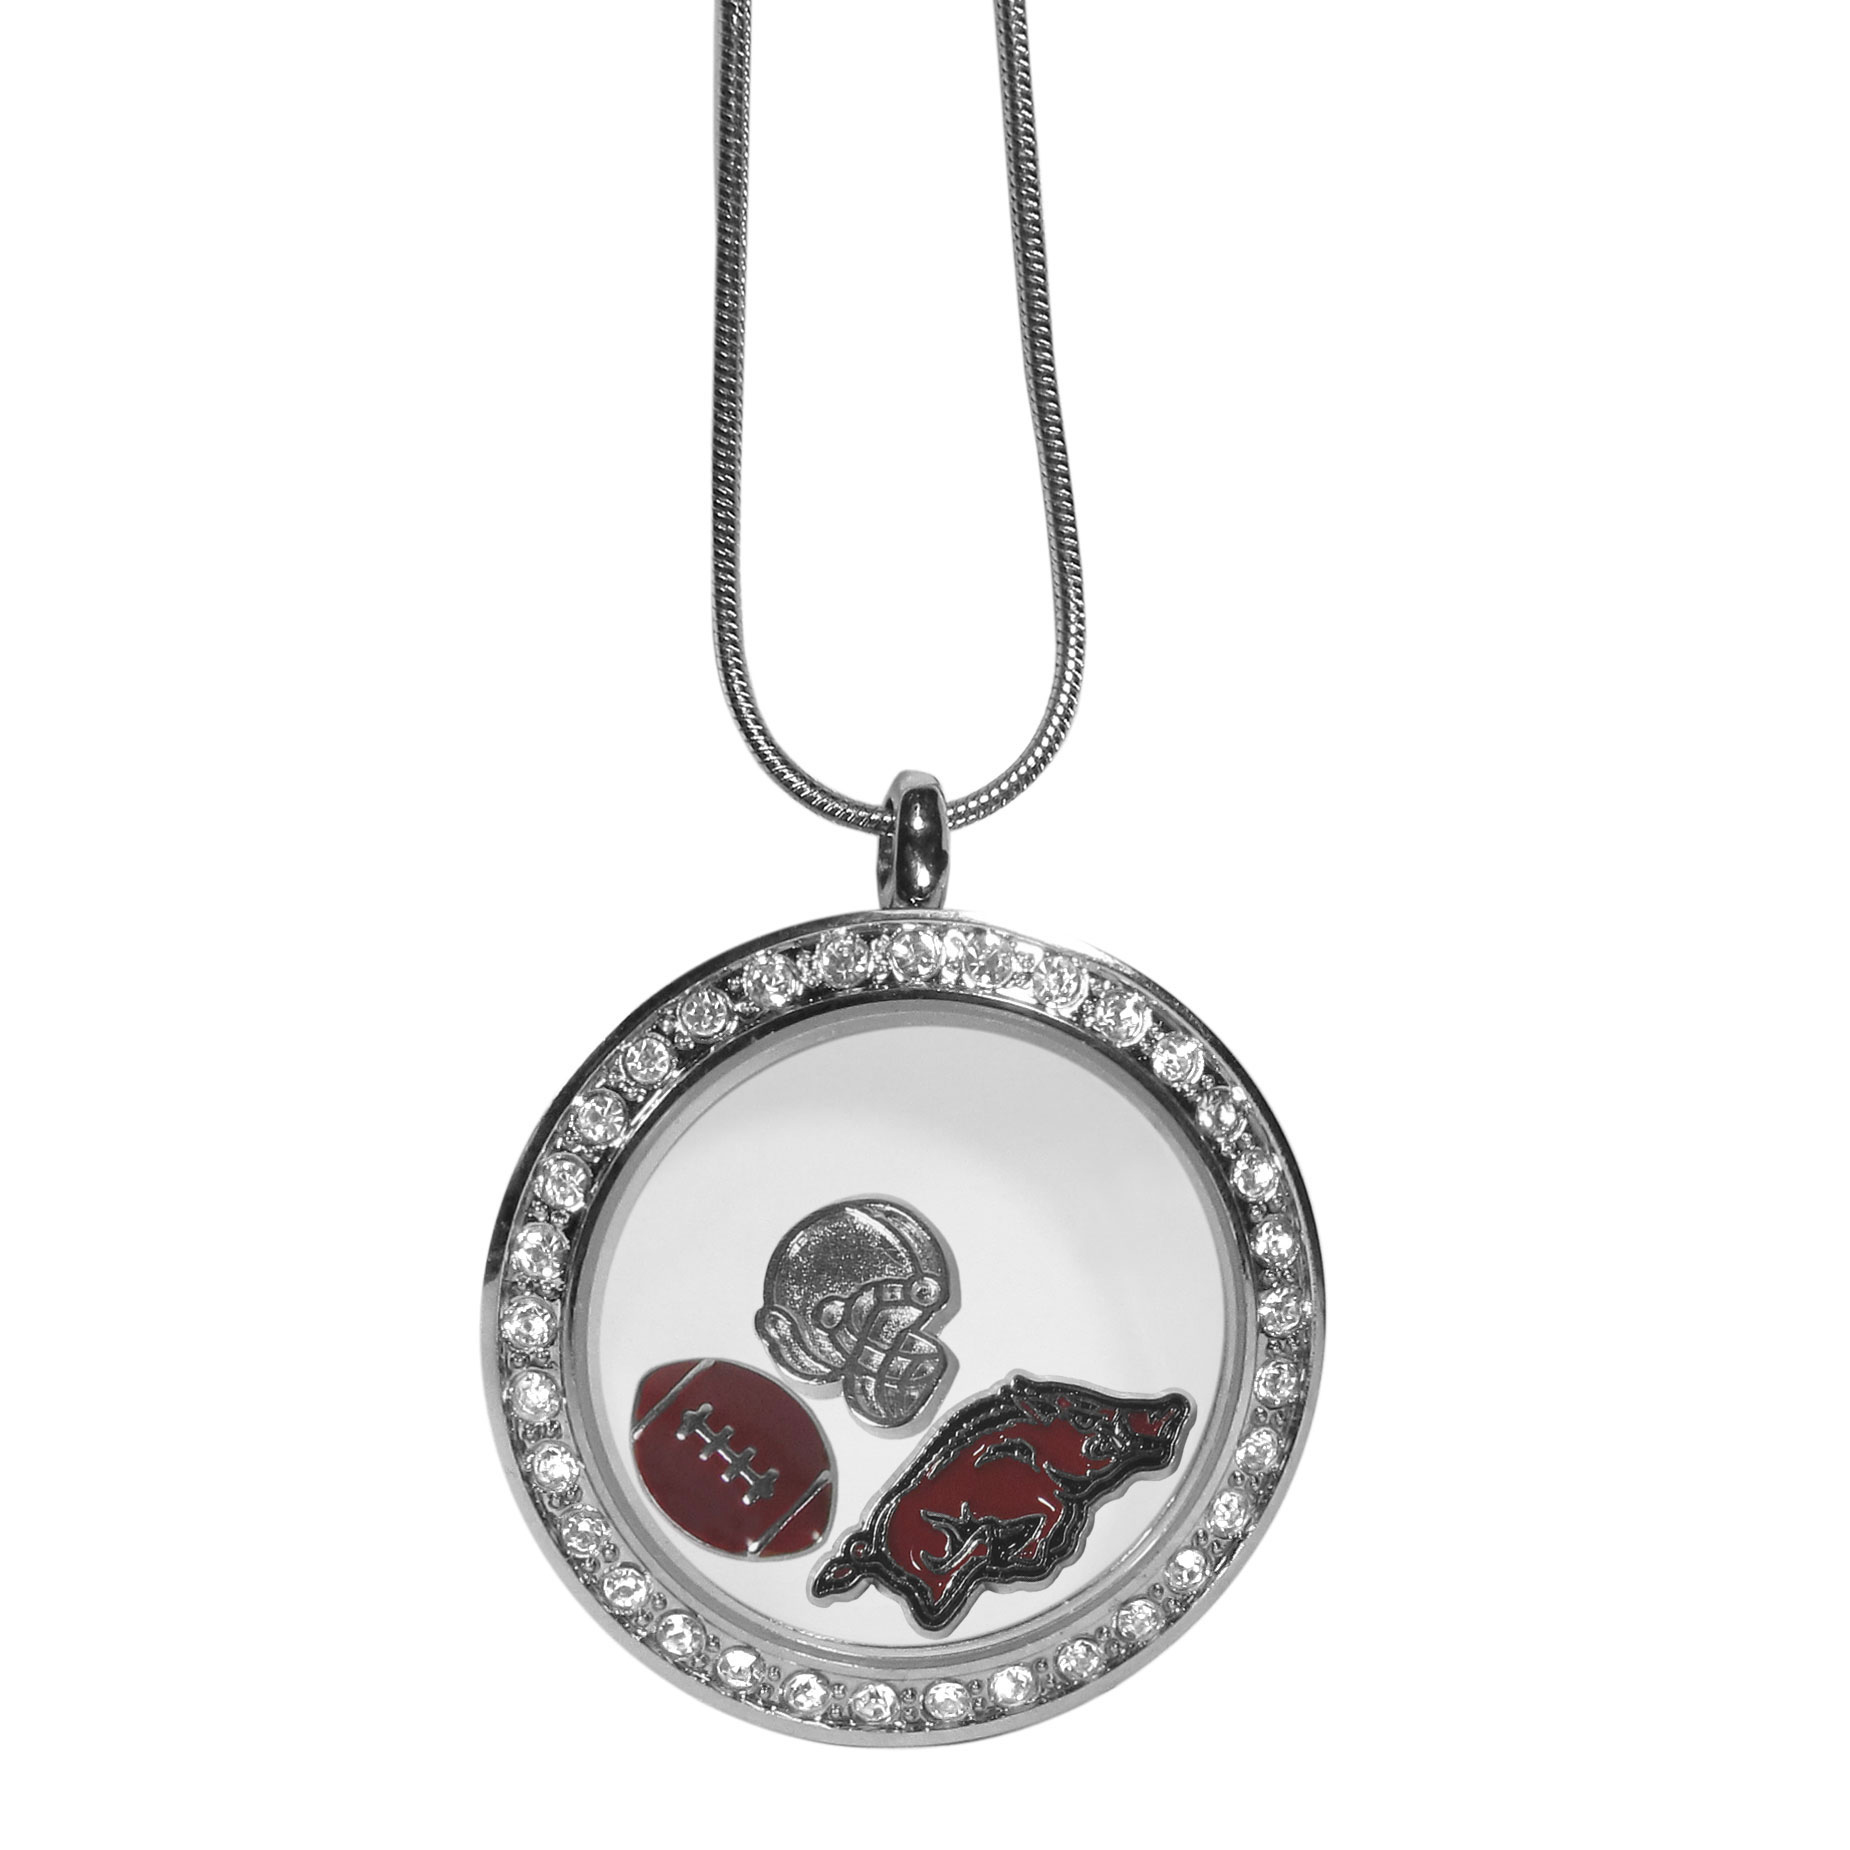 Arkansas Razorbacks Locket Necklace - We have taken the classic floating charm locket and combined with licensed sports charms to create a must have fan necklace. The necklace comes with 3 charms; 1 Arkansas Razorbacks charm, one football charm and one helmet charm. The charms float in a beautiful locket that has a strong magnetic closure with a rhinestone border. The locket comes on an 18 inch snake chain with 2 inch extender.